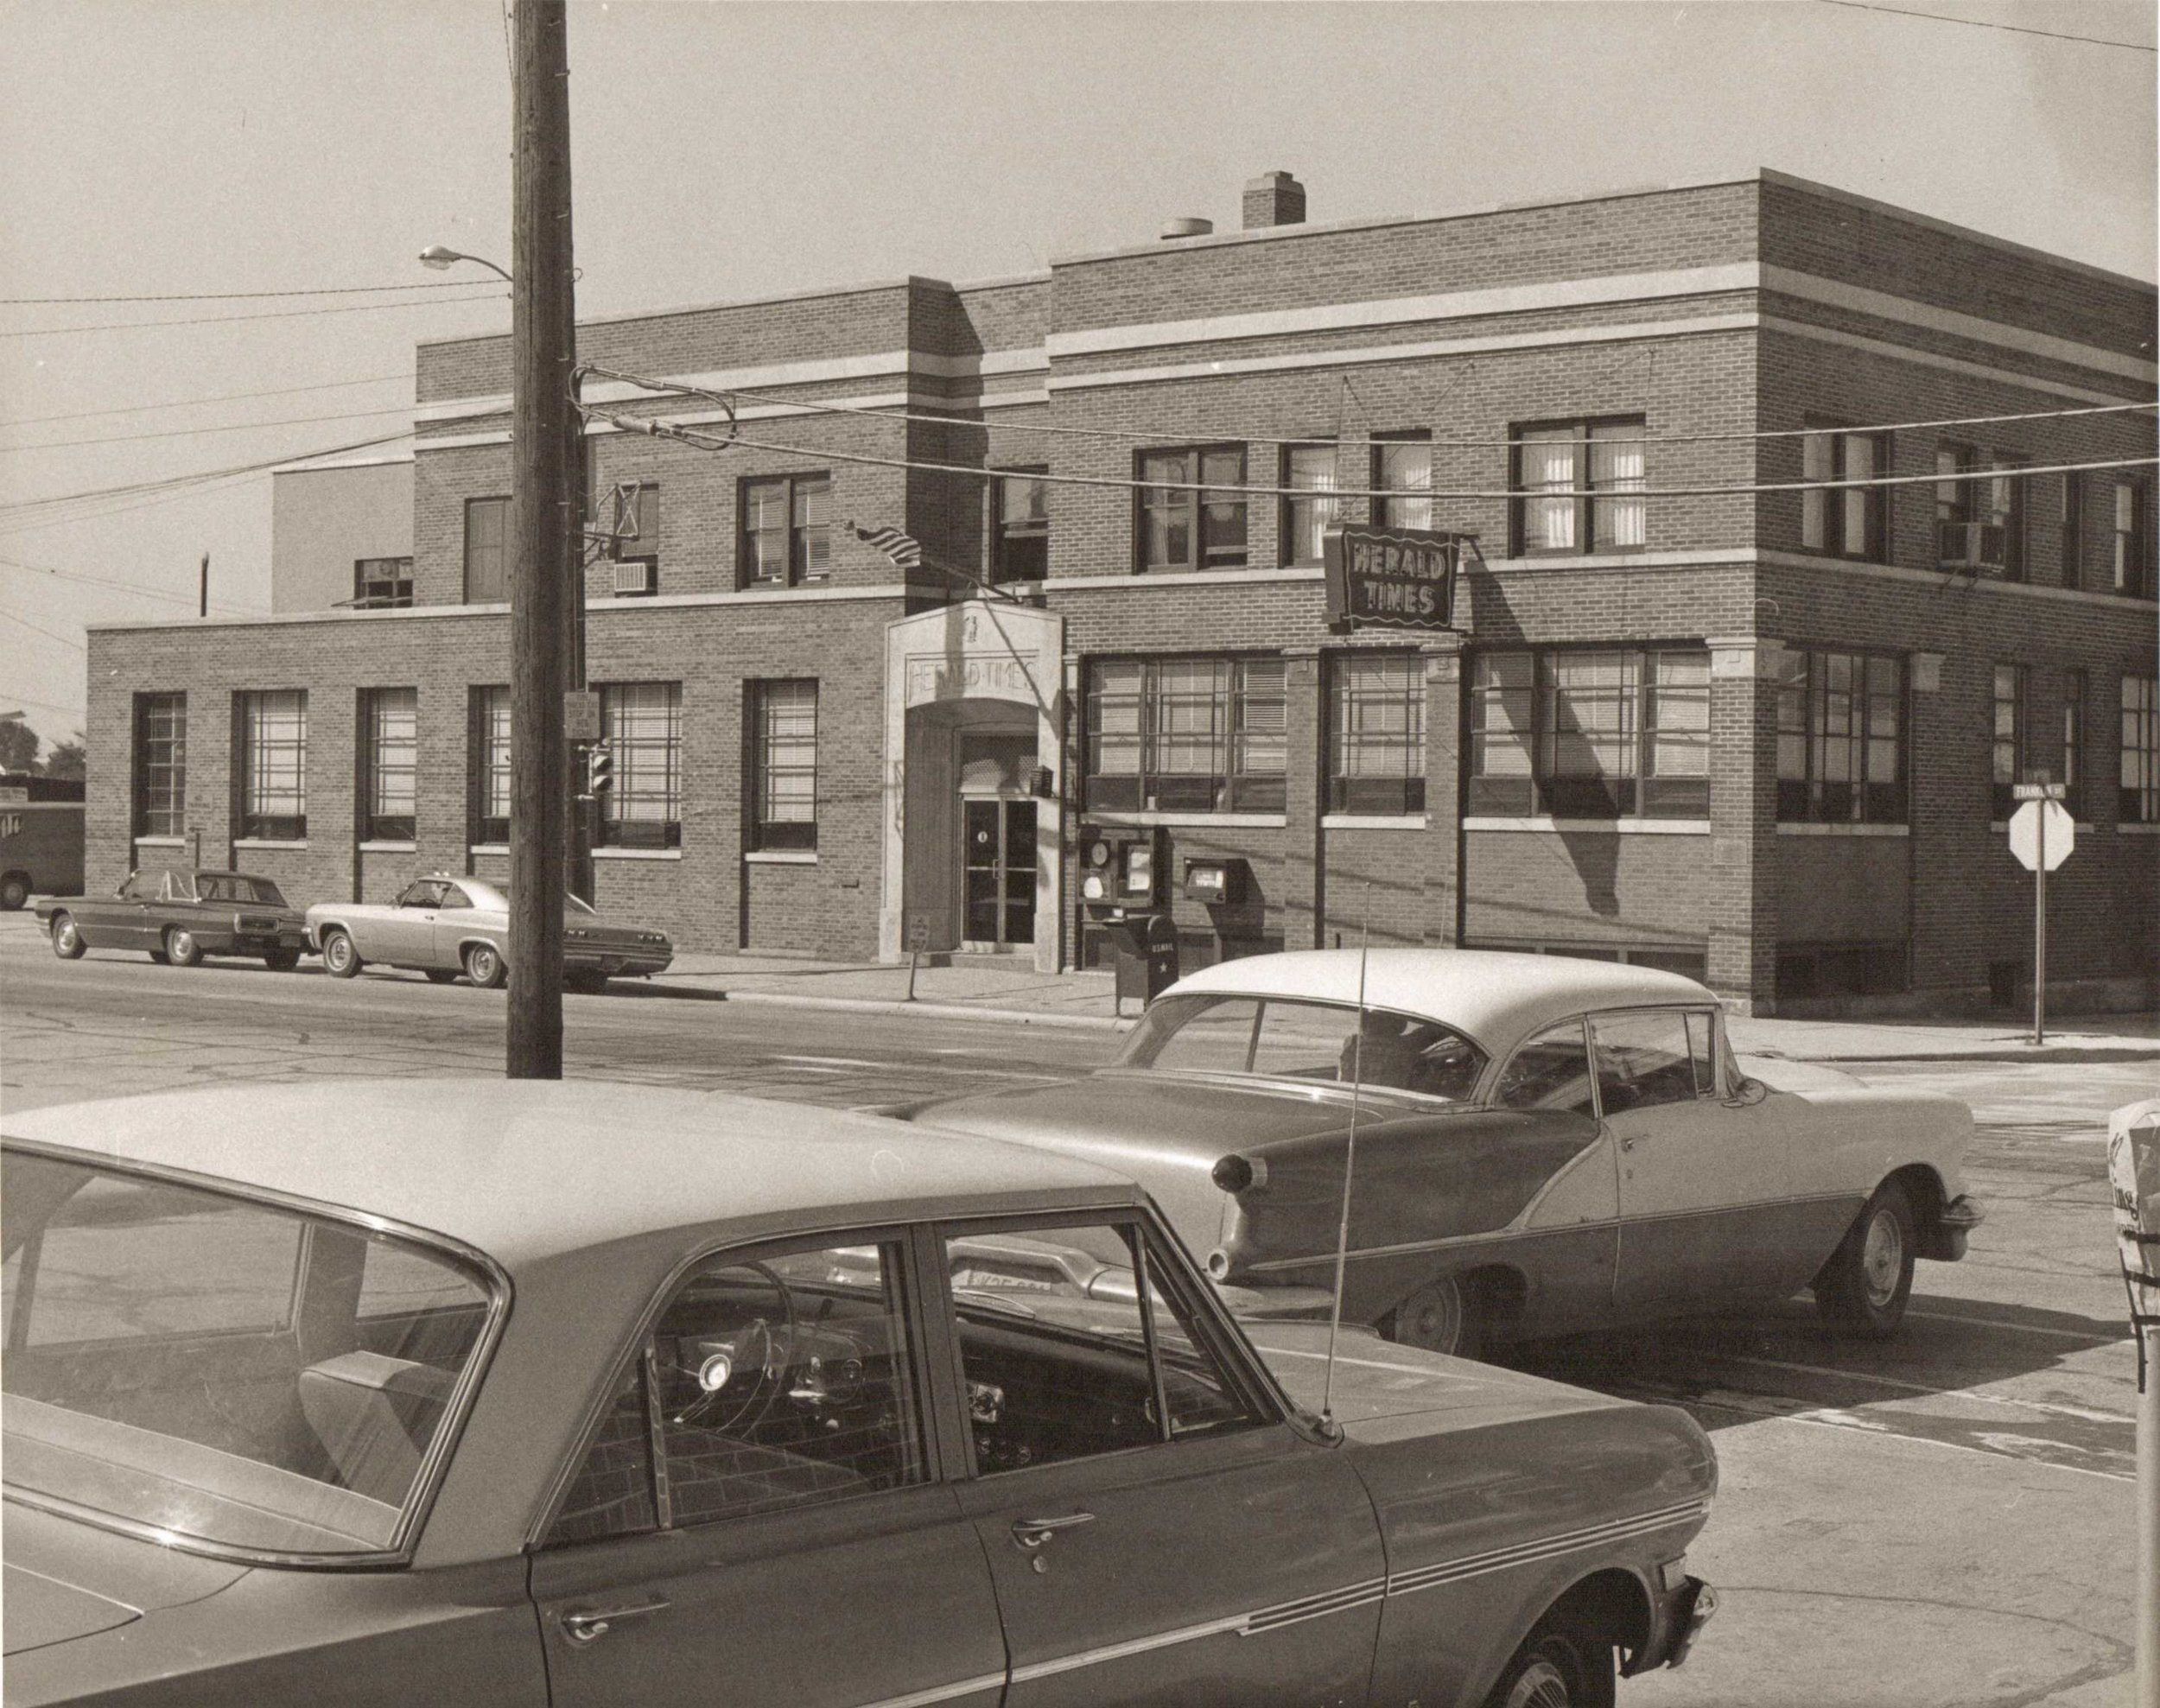 Herald Times office, located at 902 Franklin Street in Manitowoc, in 1968.